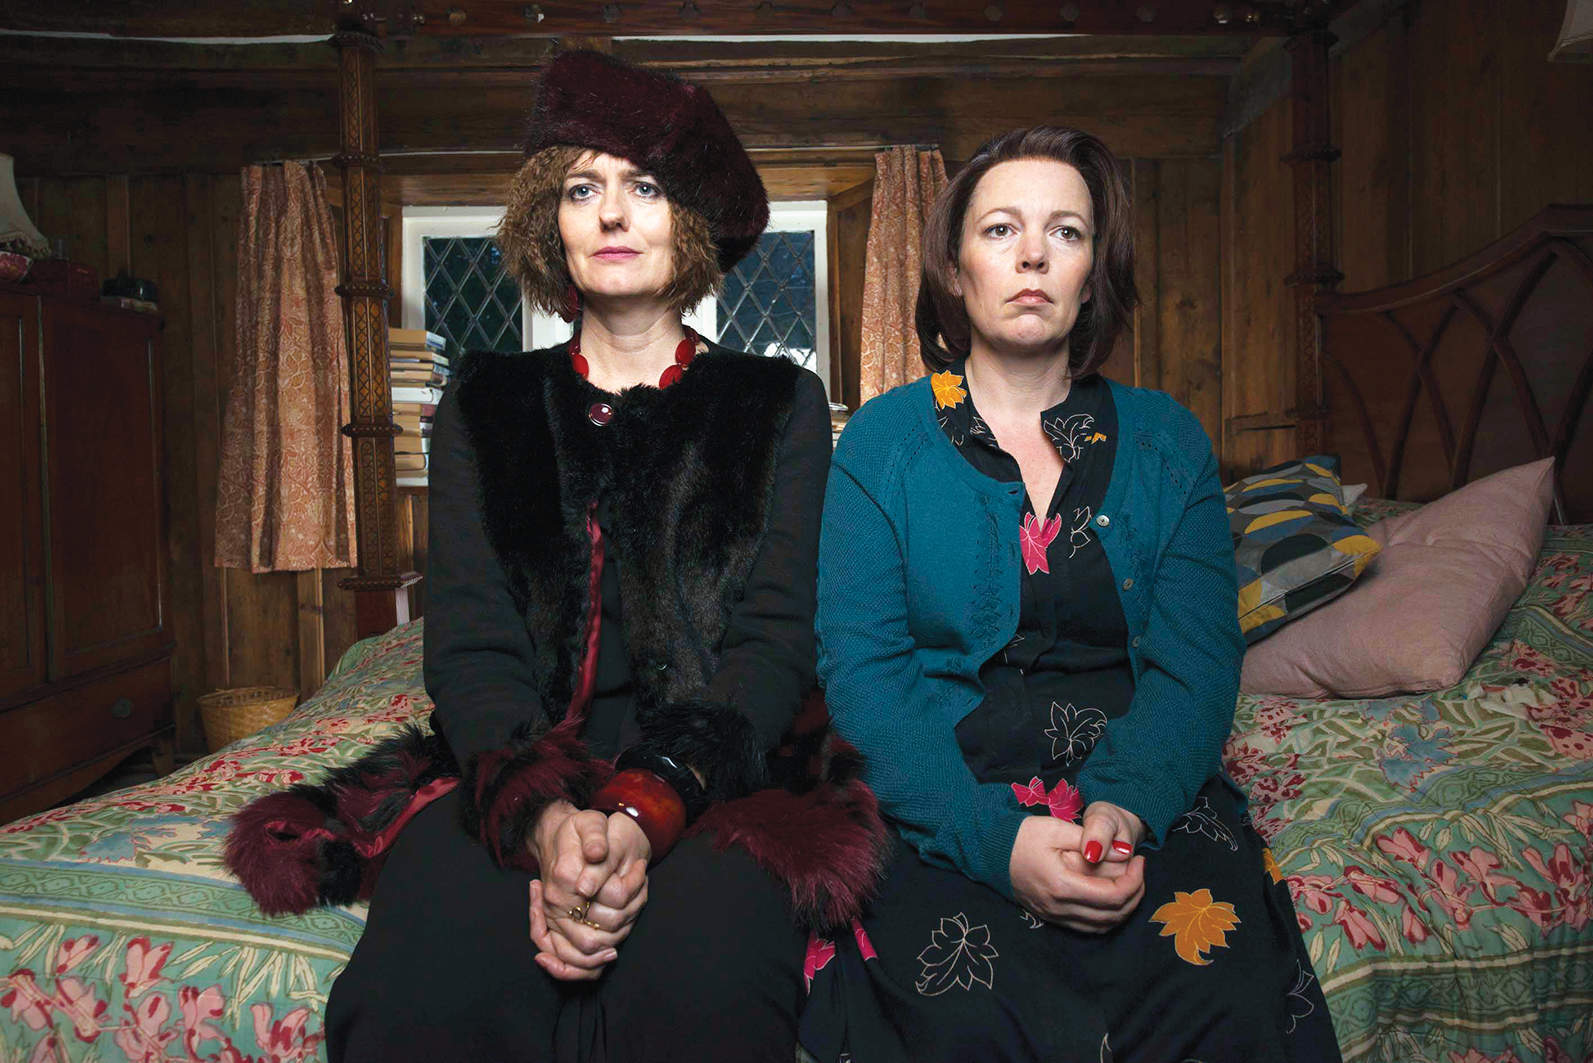 Channel 4's comedy-drama Flowers is hard to pin down: arch, spiky, sad, and almost indescribably odd